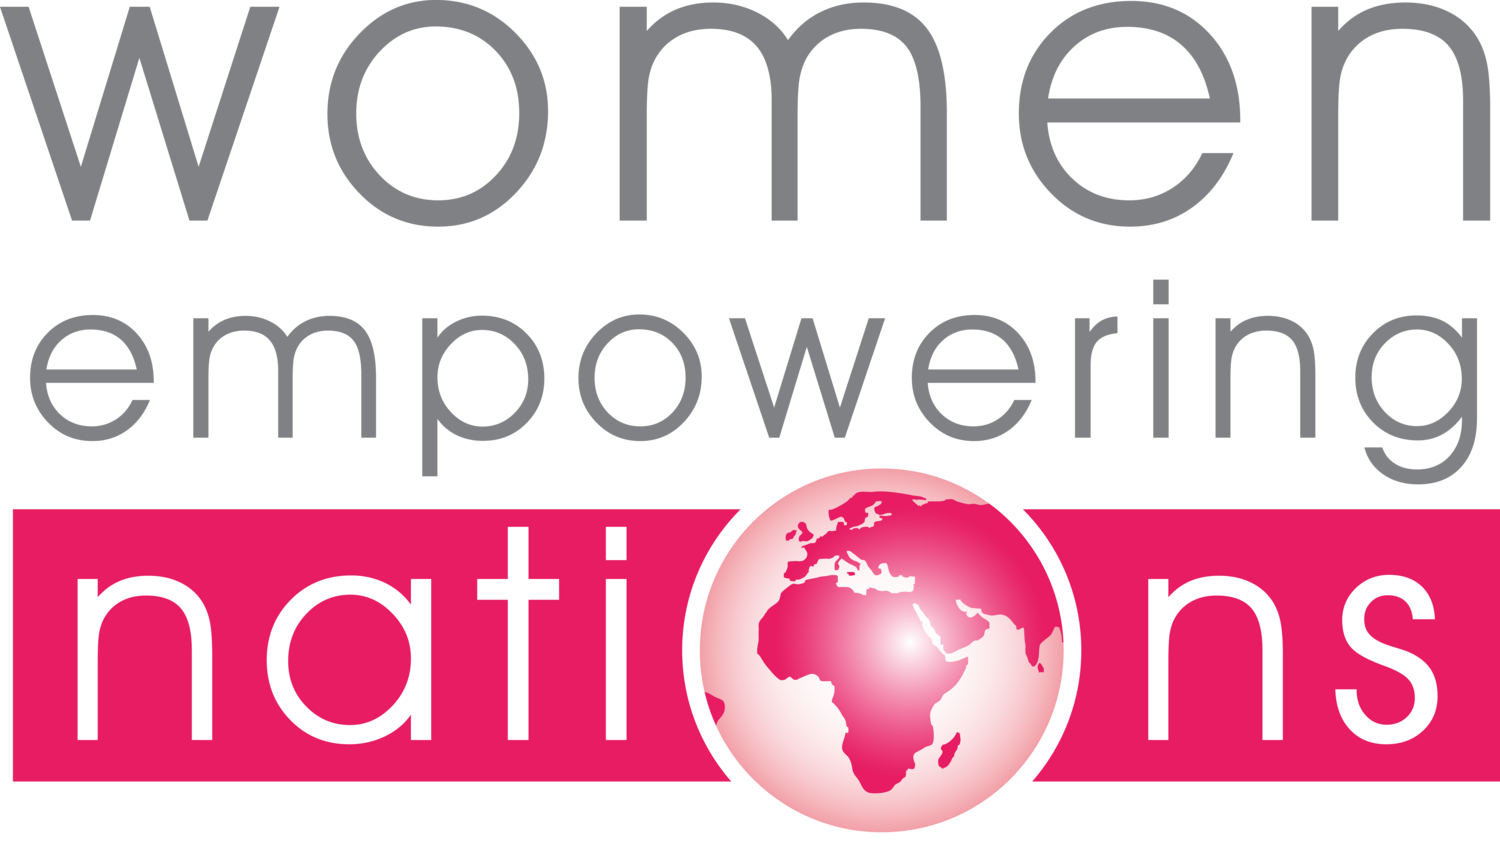 Women Empowering Nations